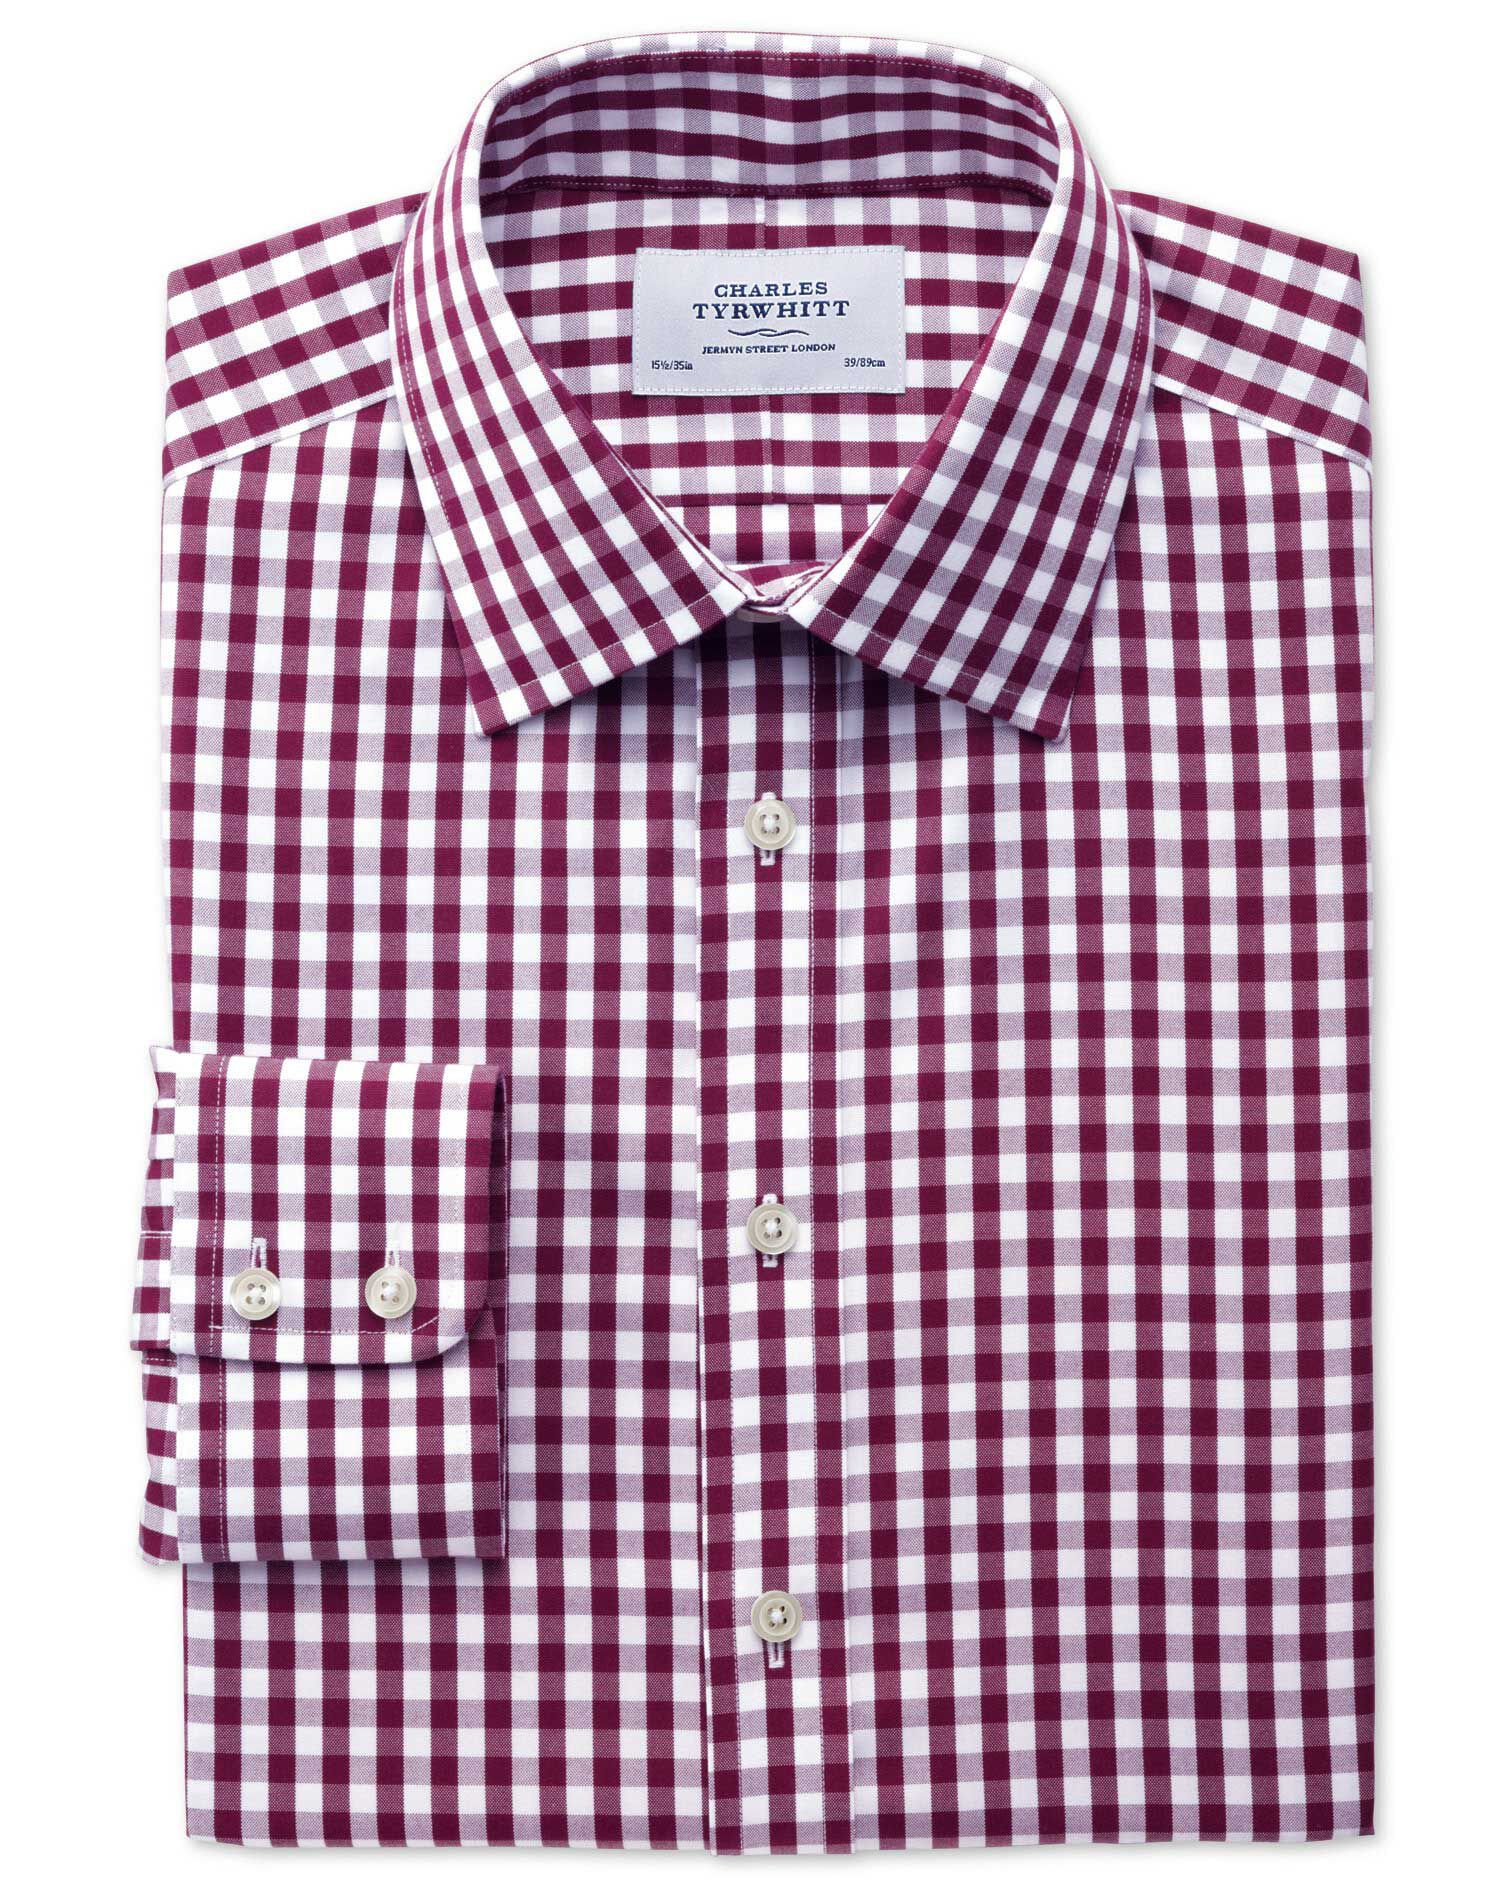 Classic Fit Non-Iron Oxford Gingham Berry Cotton Formal Shirt Single Cuff Size 17/37 by Charles Tyrw